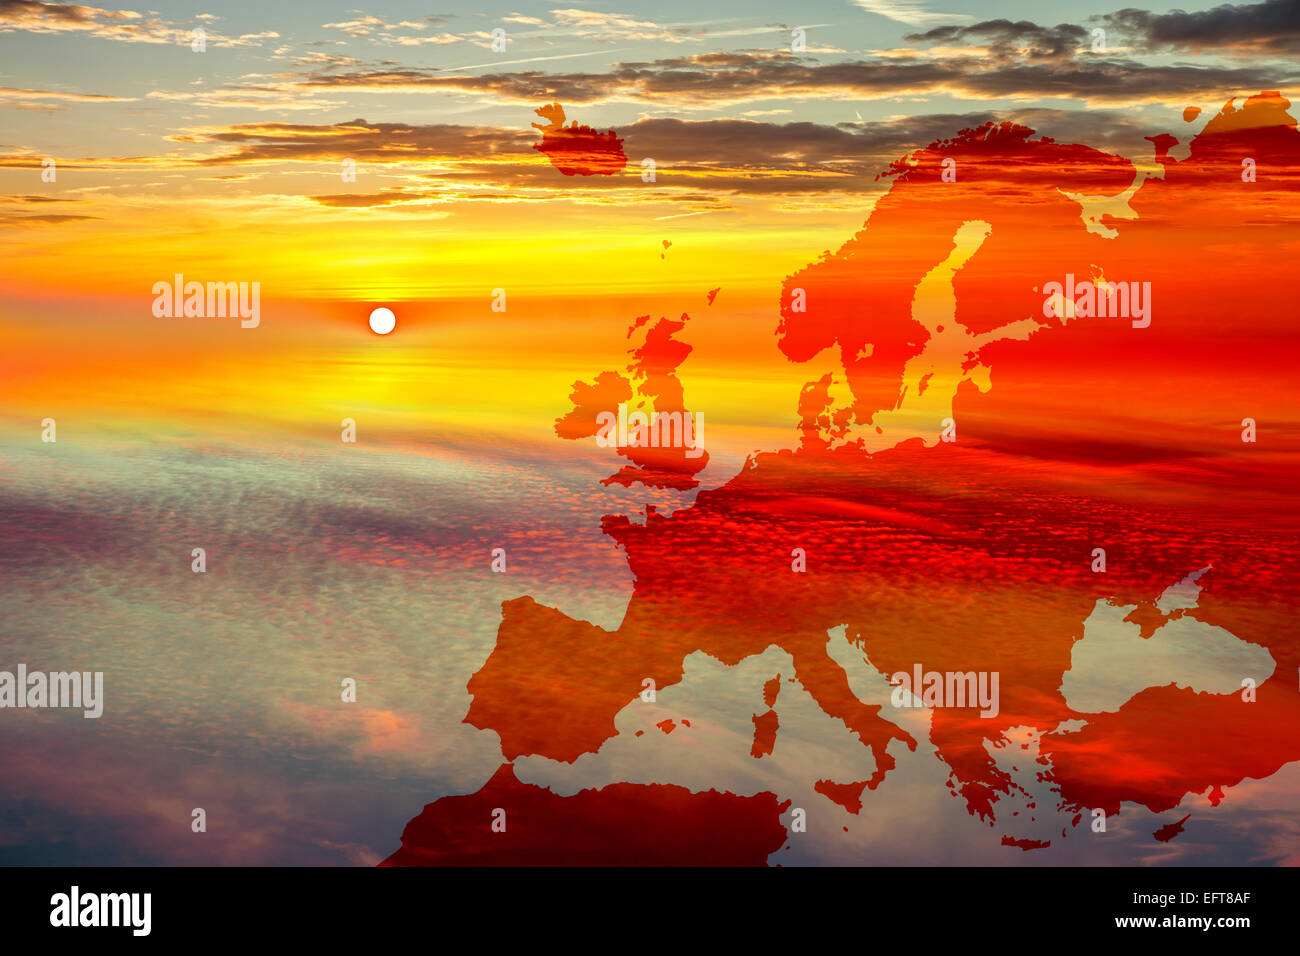 Map of Europe on sunset sky background. - Stock Image